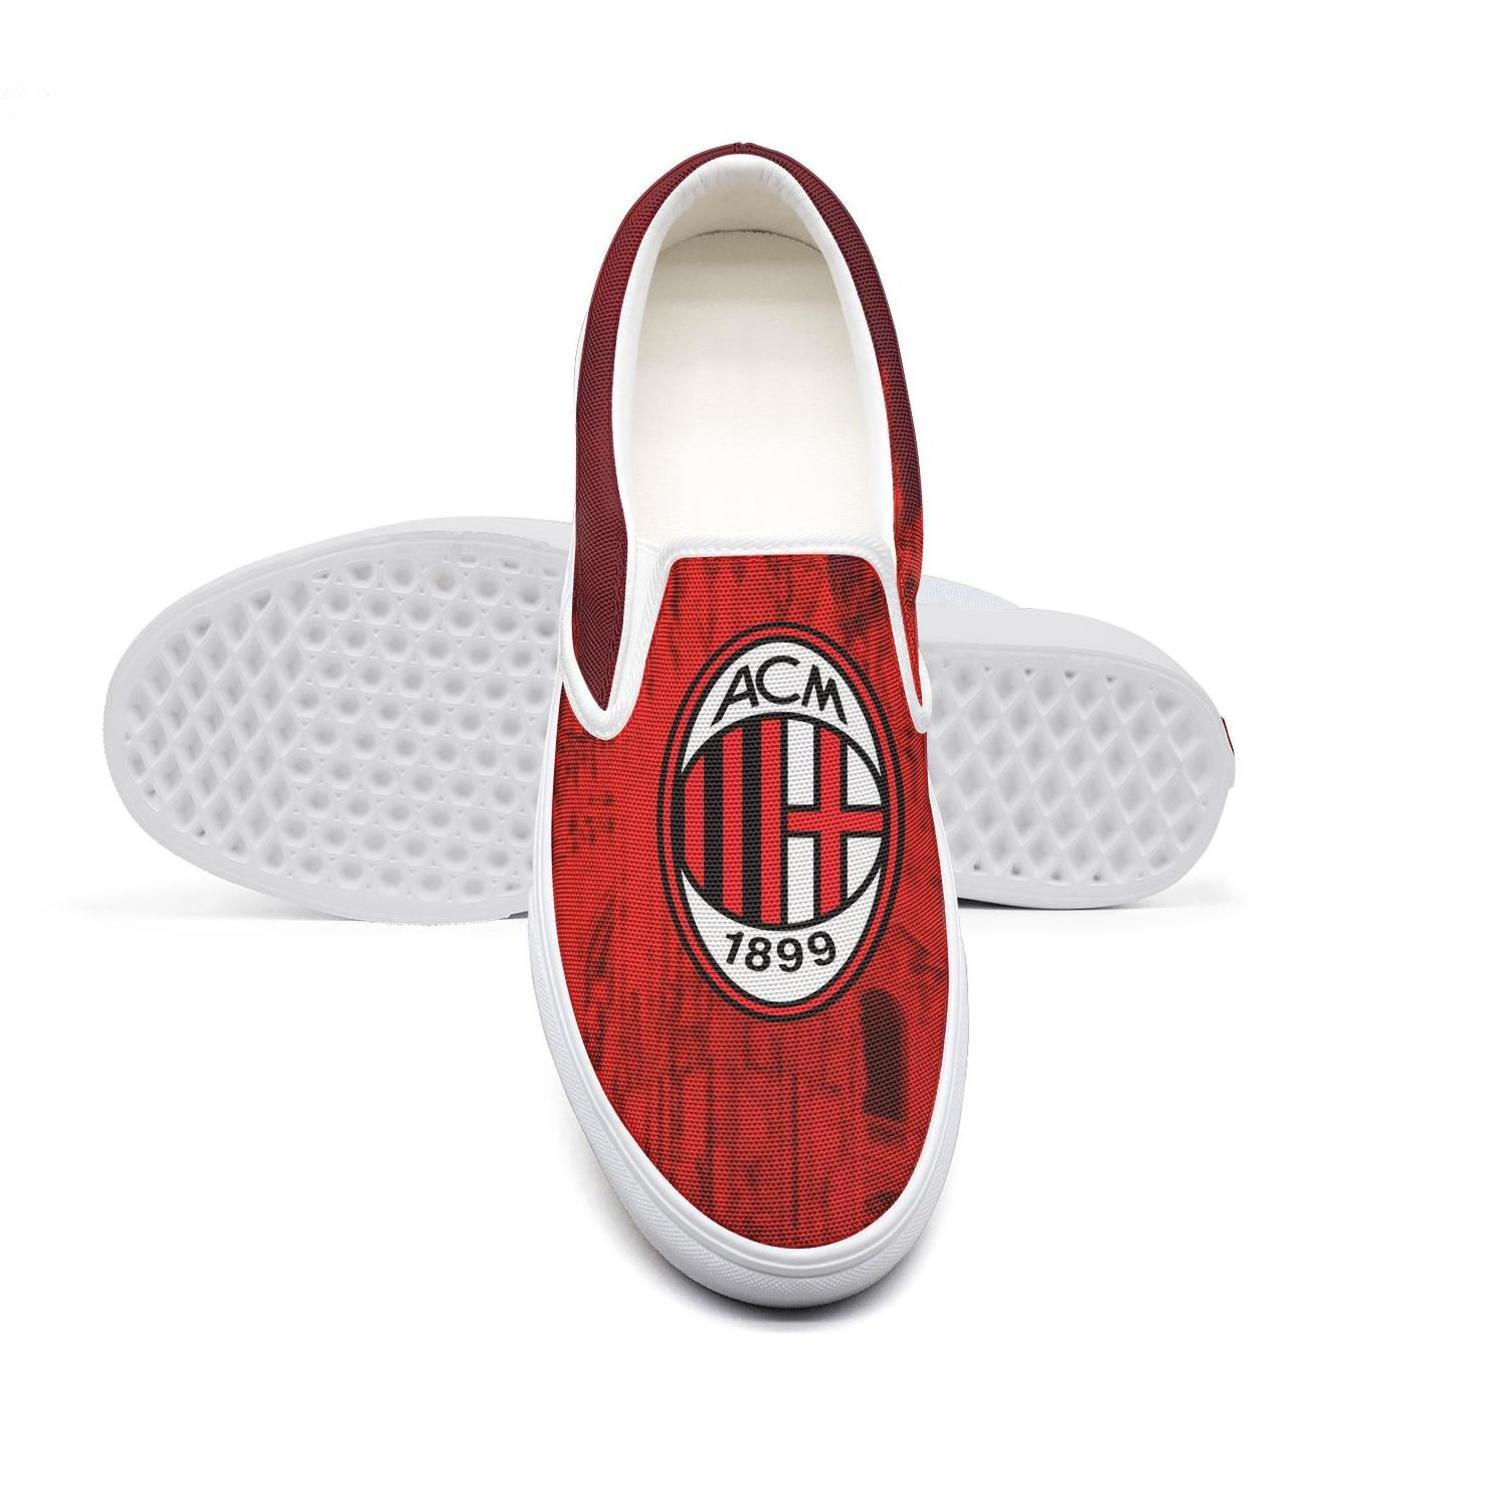 Casual A C Milan I Rossoneri L Diavolo Acm Gradient City Unisex Canvas Low Top Non Slip Shoes Design Print Classic Limited Edition Red Tennis Shoes Ladies Shoes From Banwanzhe 30 76 Dhgate Com